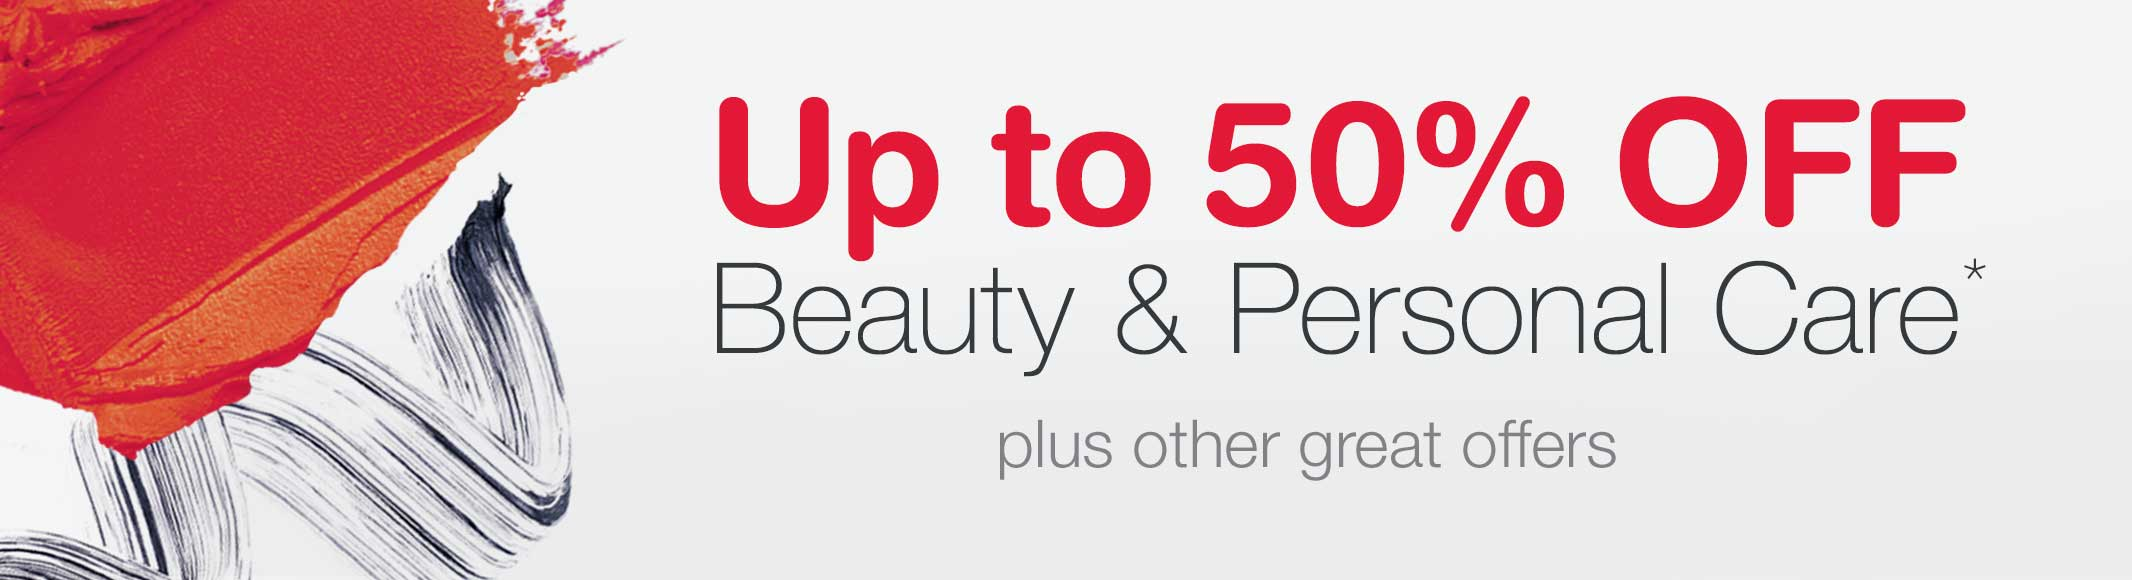 Up to 50% OFF Beauty & Personal Care.* Plus other great offers.